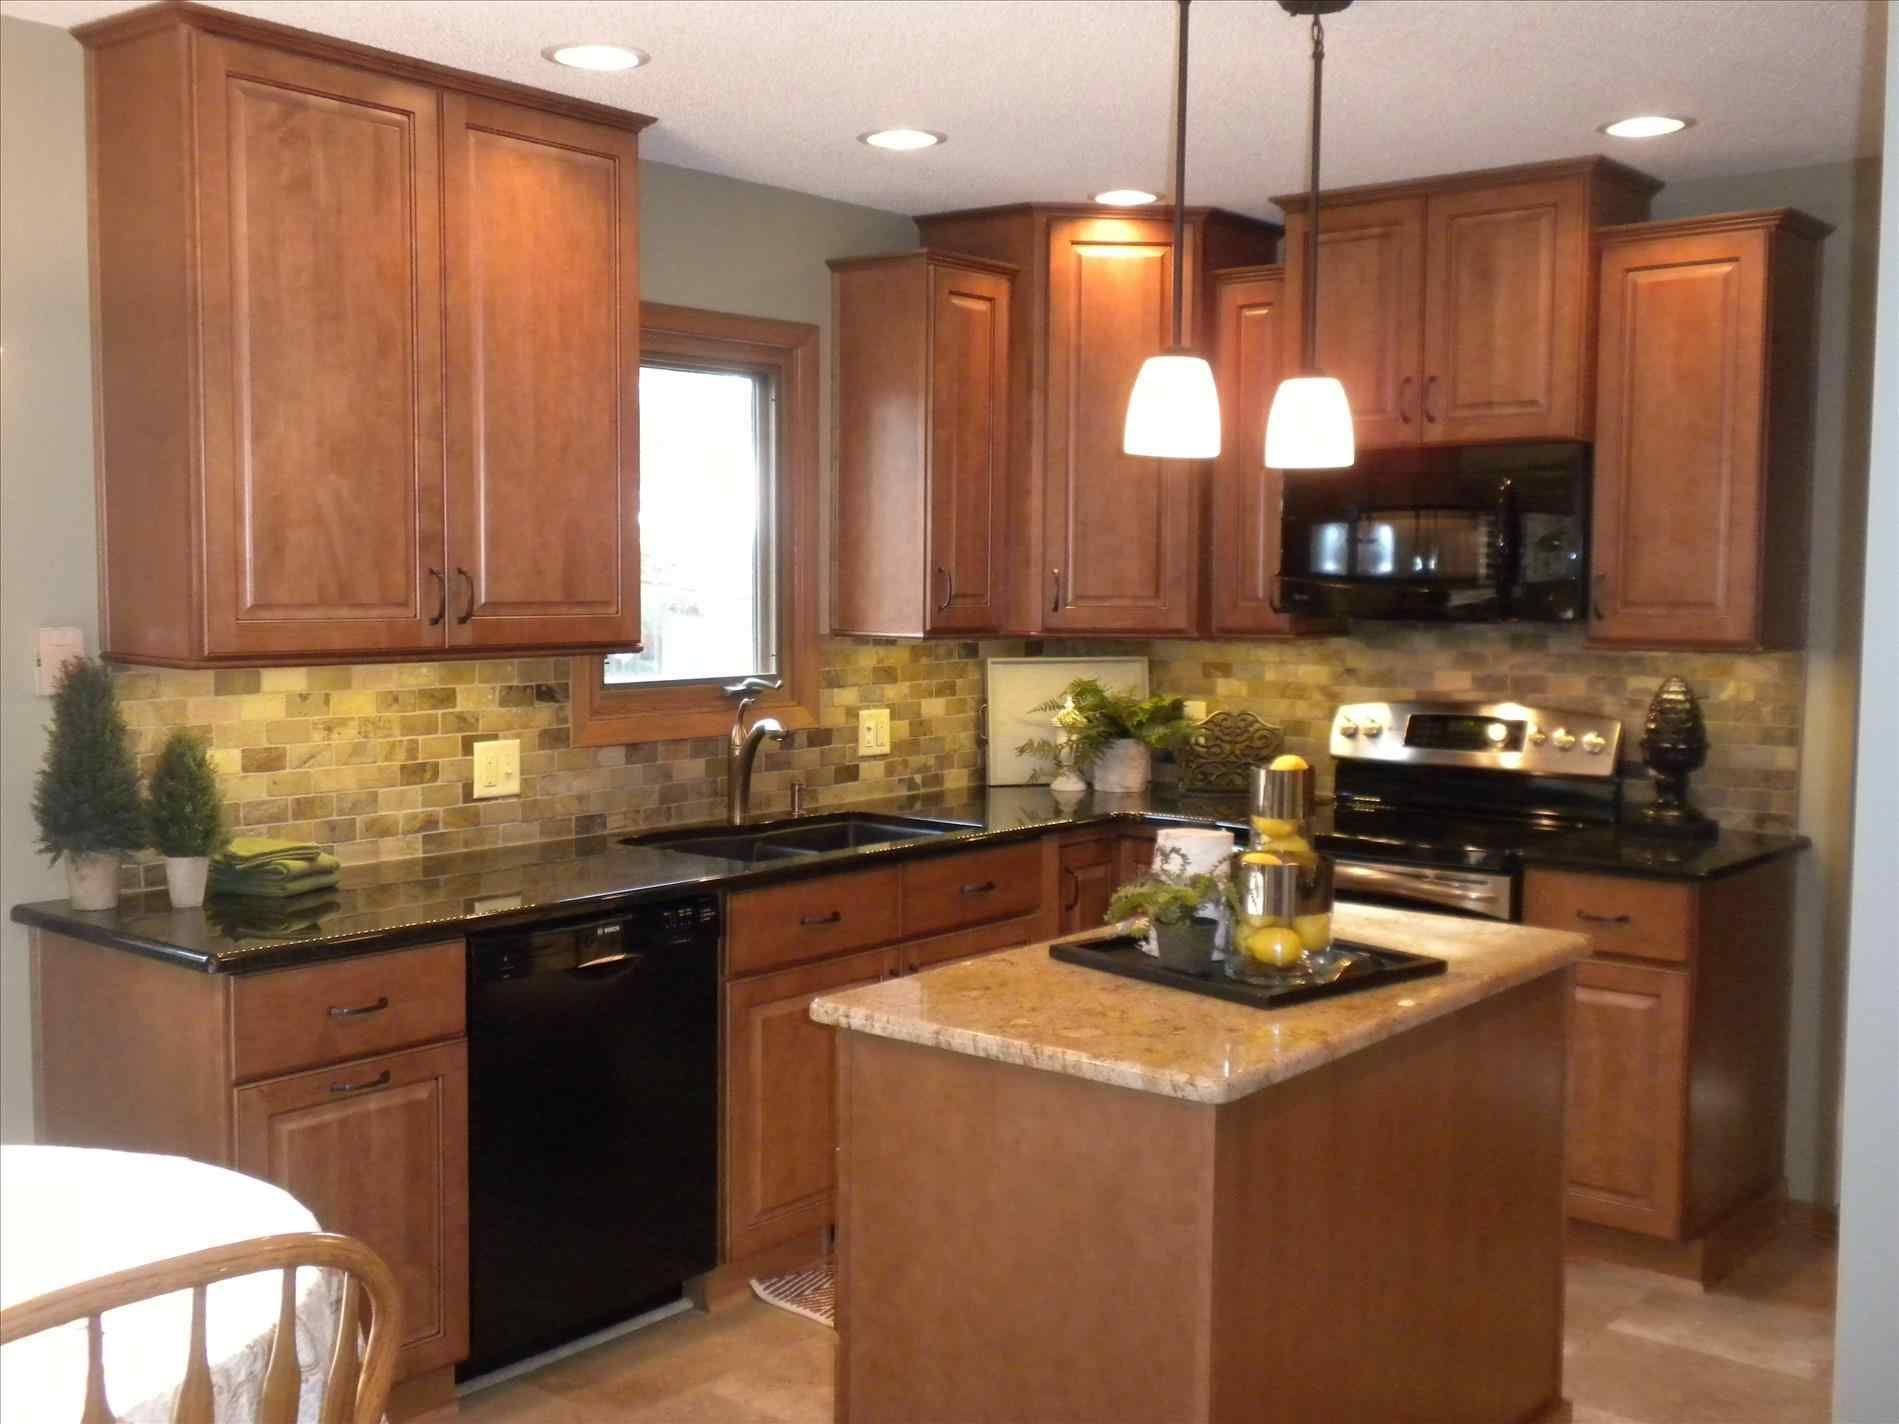 Black Stainless Steel Appliances With Oak Cabinets Outdoor